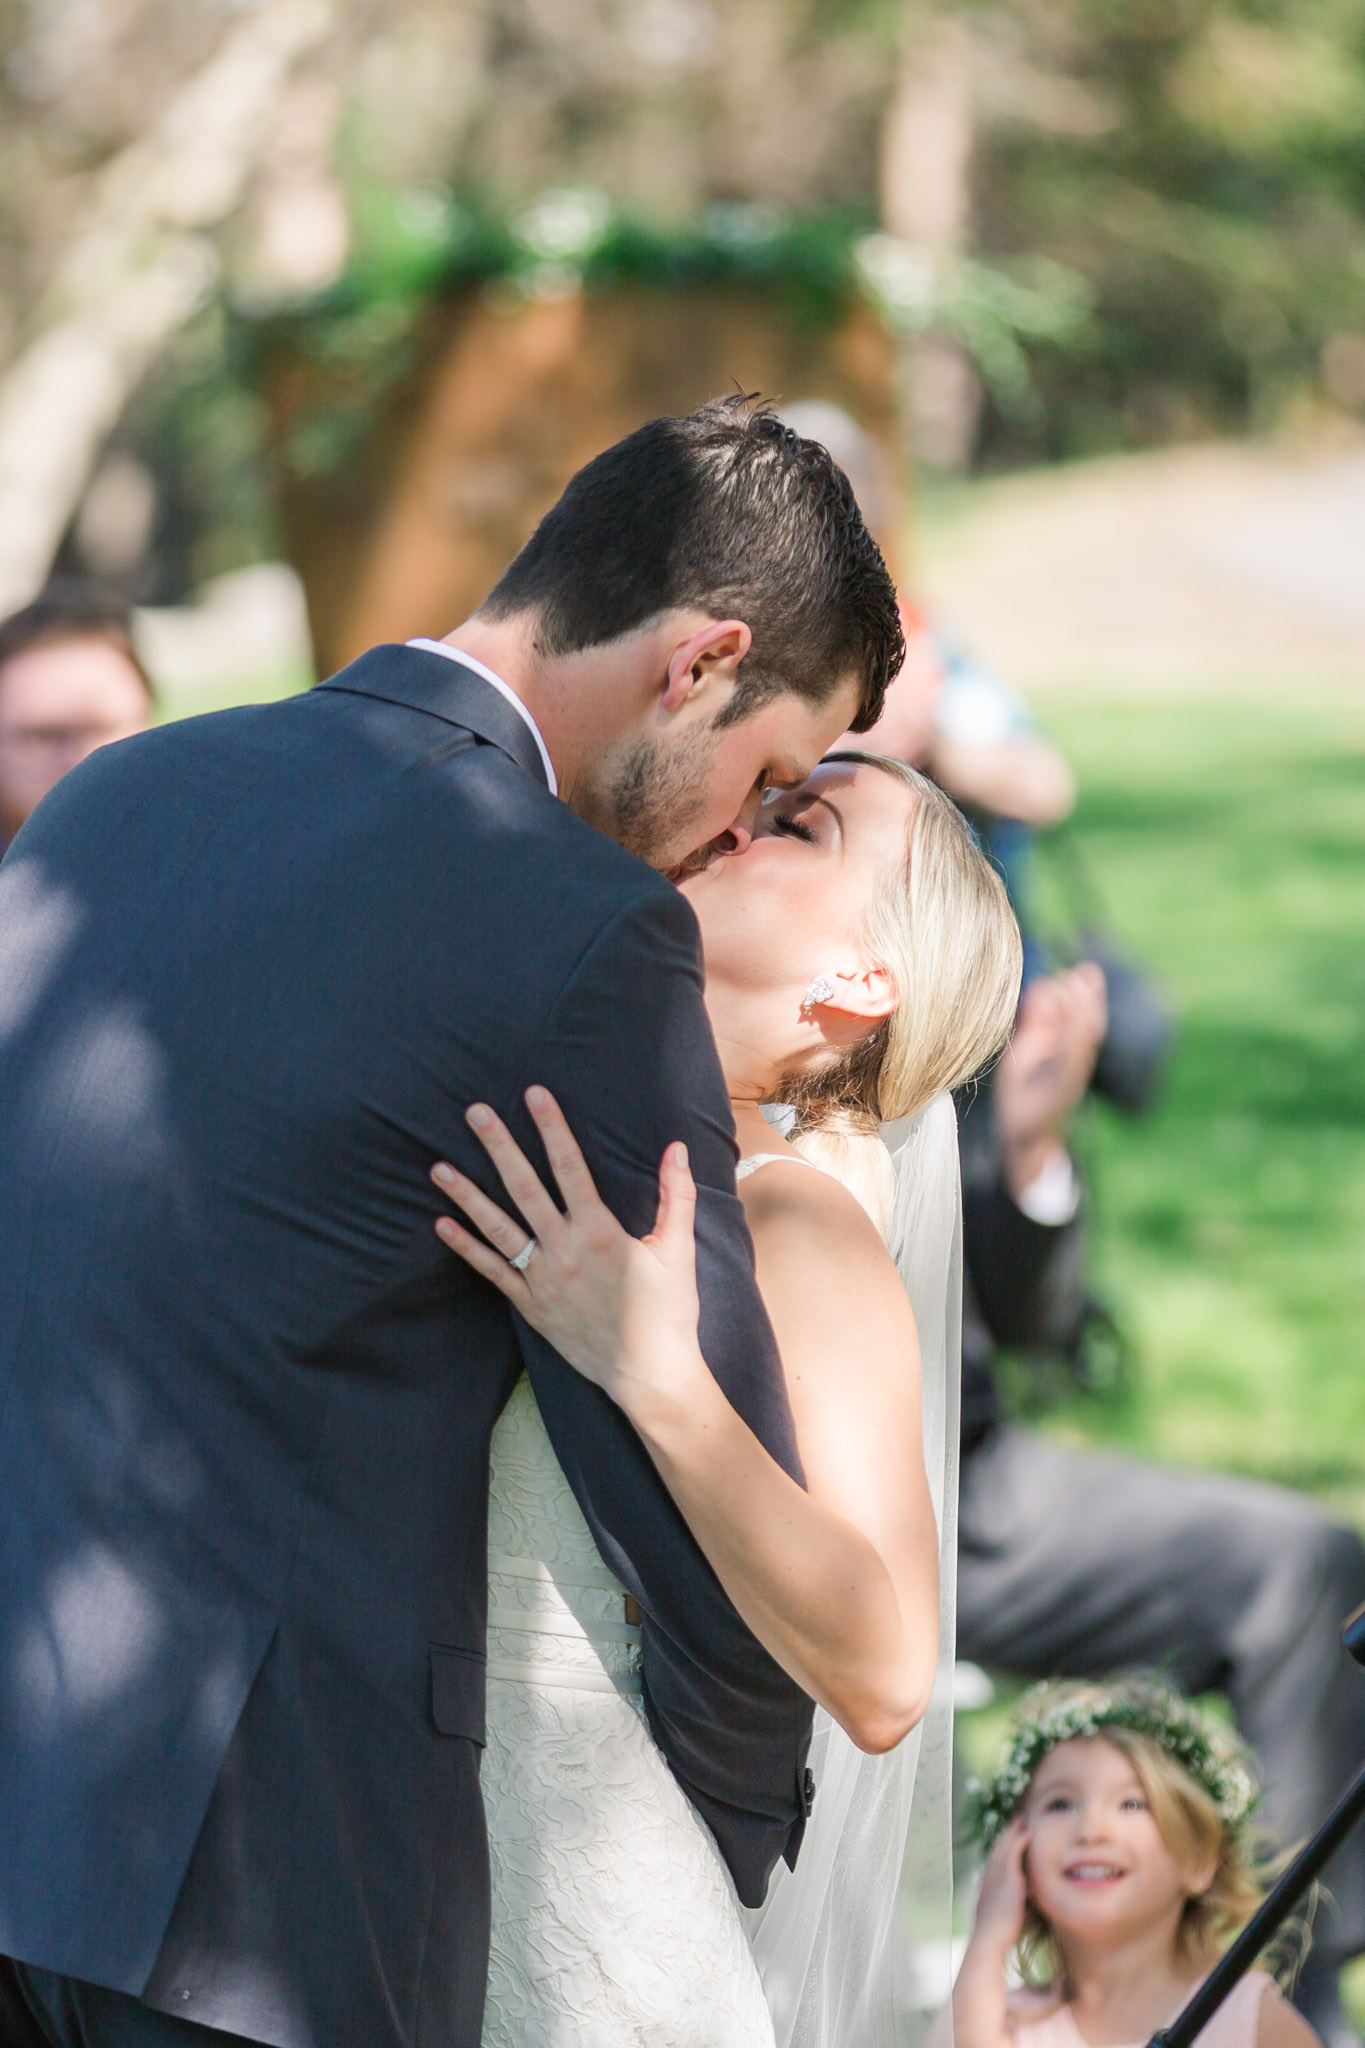 Katie and Brent-8747.jpg